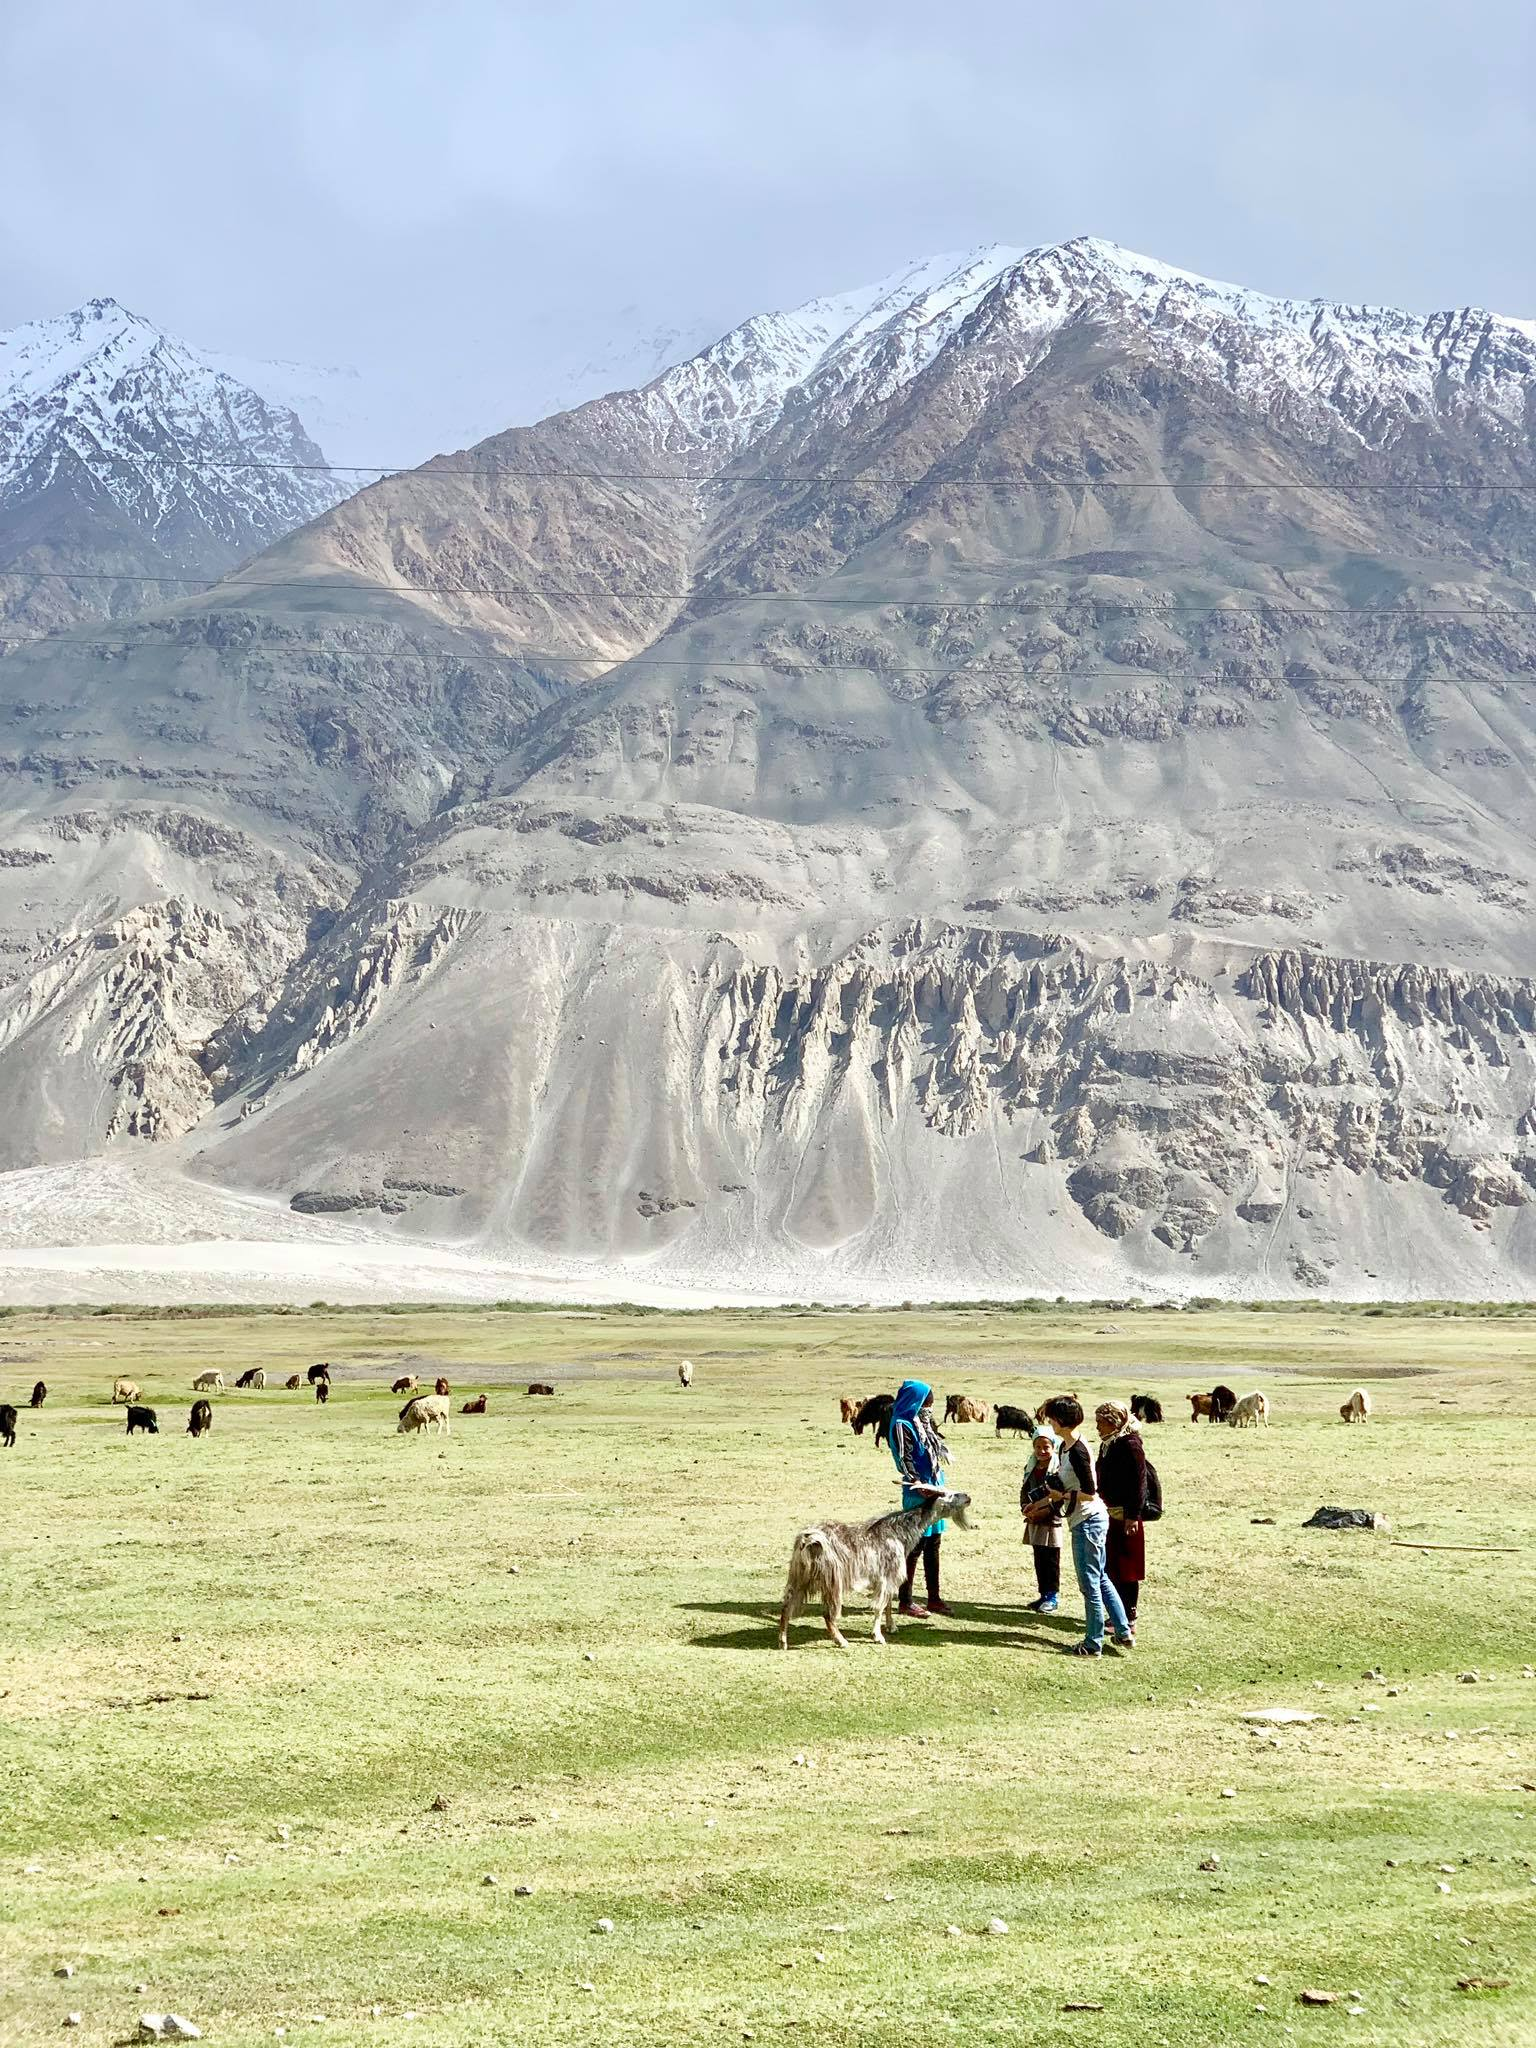 Kach Solo Travels in 2019 Driving from Ishkashim to Wakhan Valley5.jpg